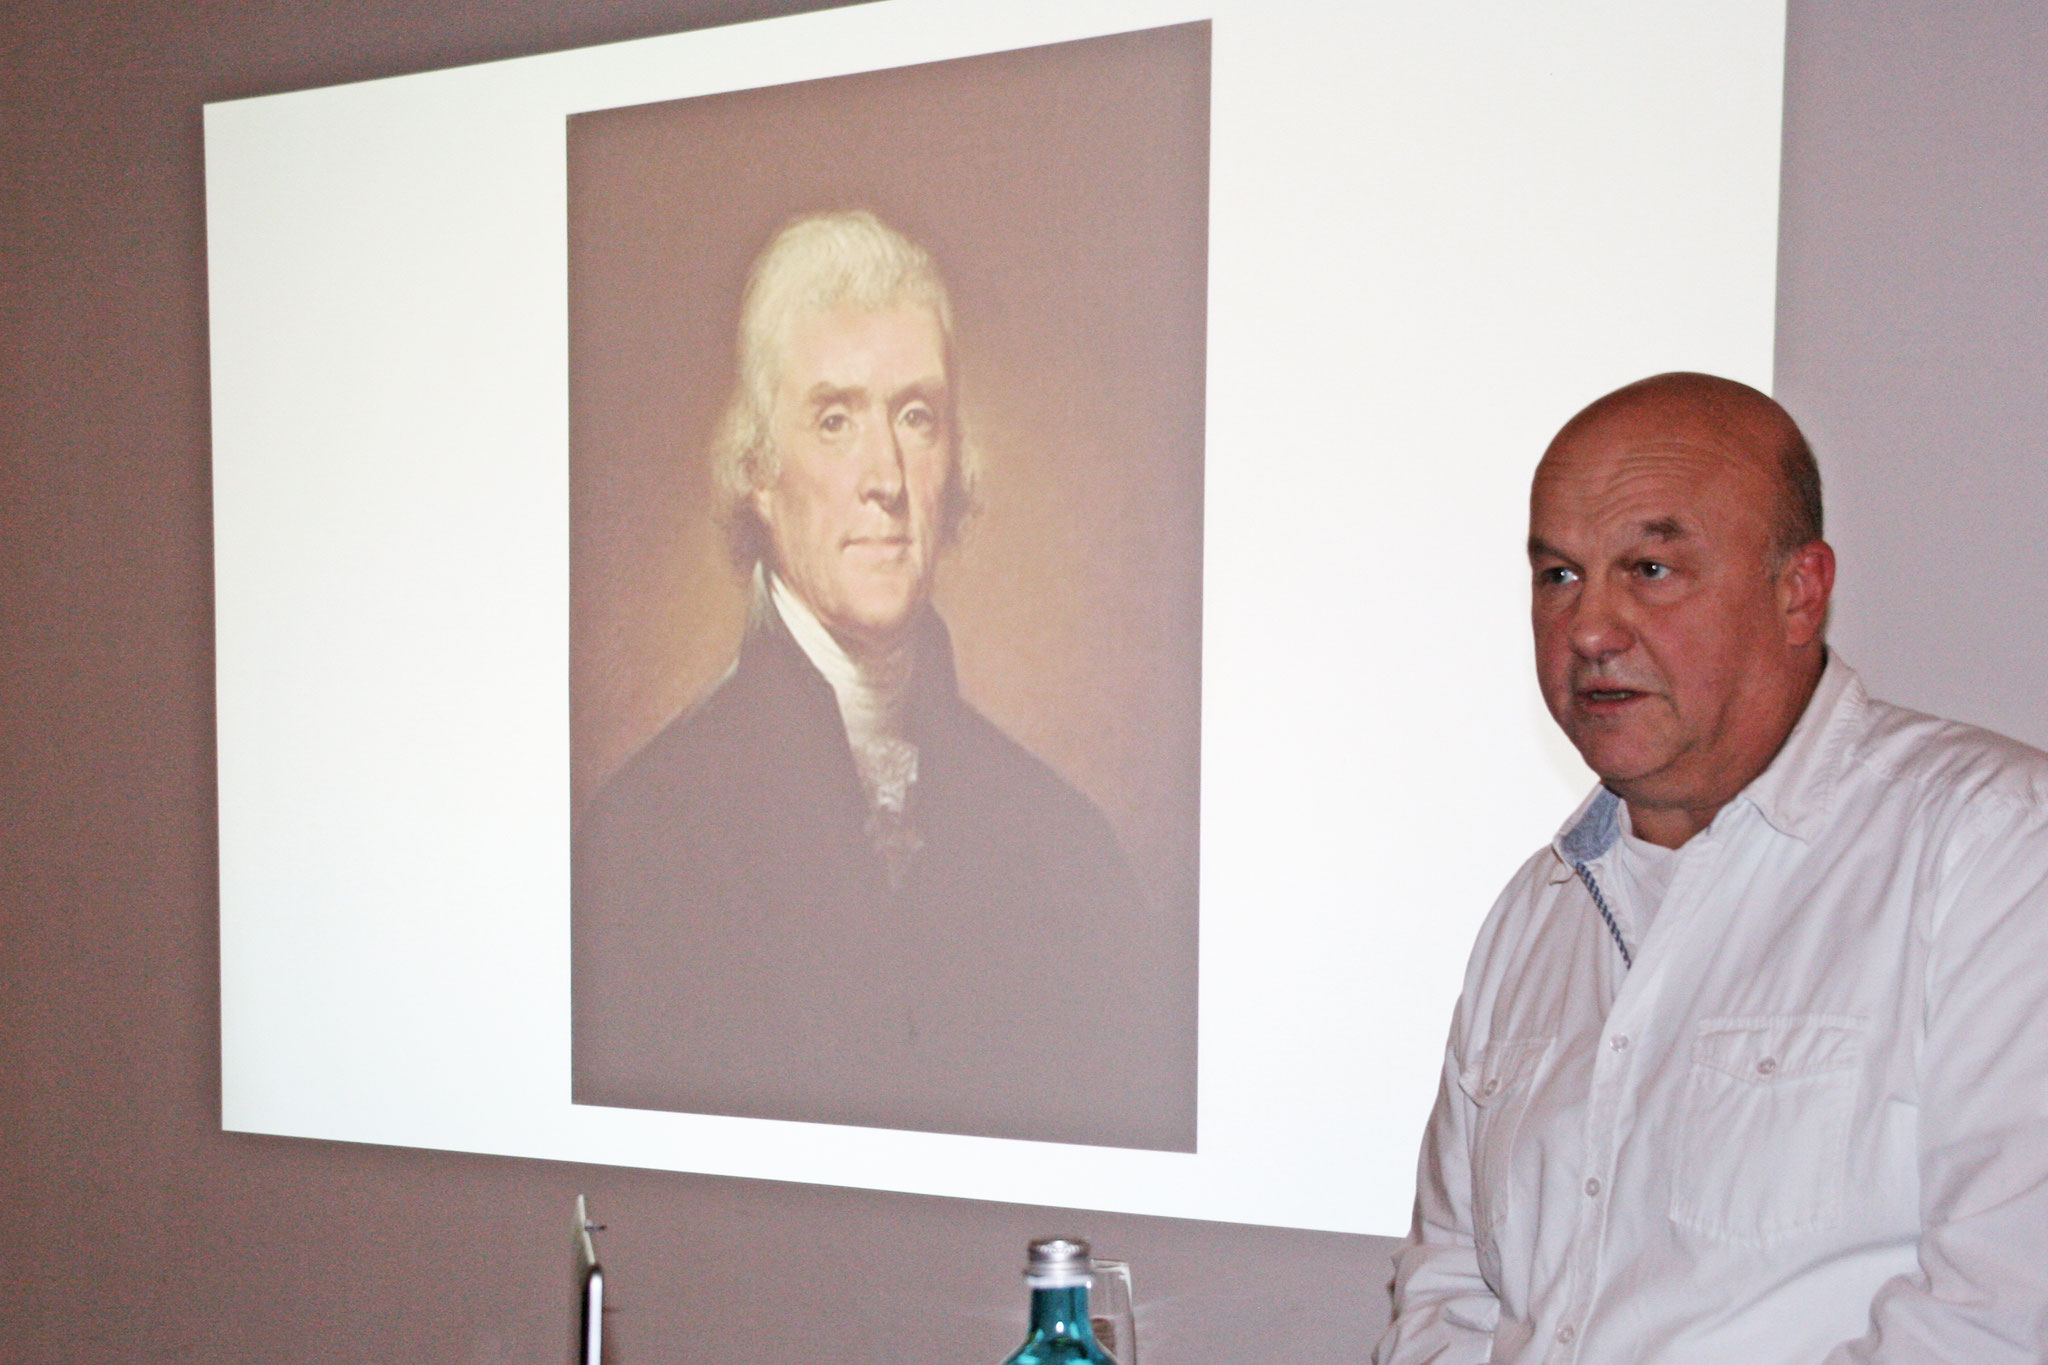 The lecture focused on Jefferson as a wine expert.